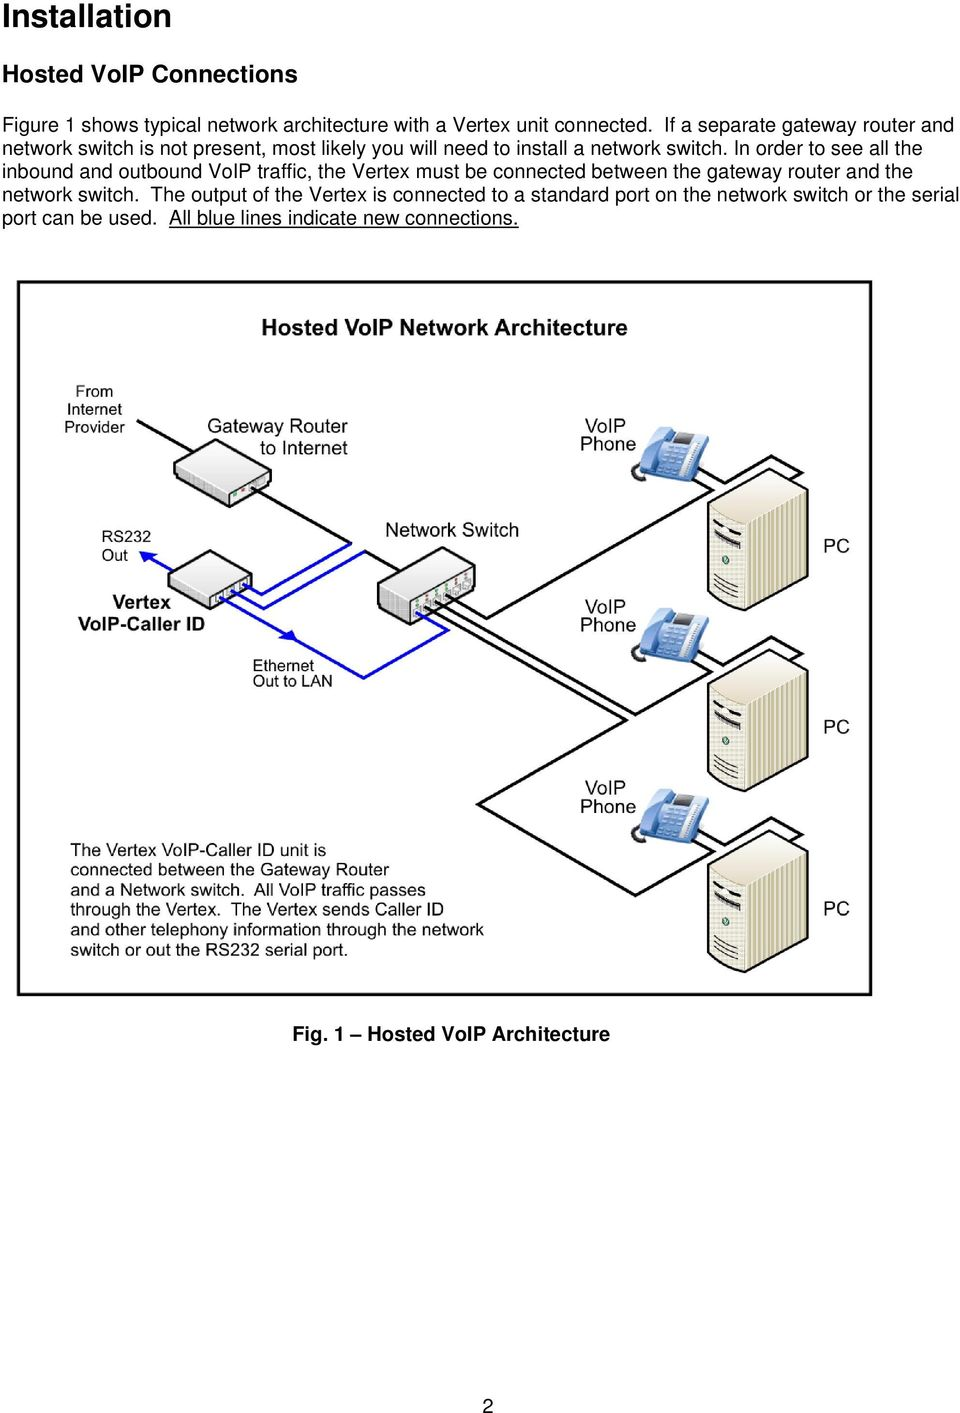 In order to see all the inbound and outbound VoIP traffic, the Vertex must be connected between the gateway router and the network switch.